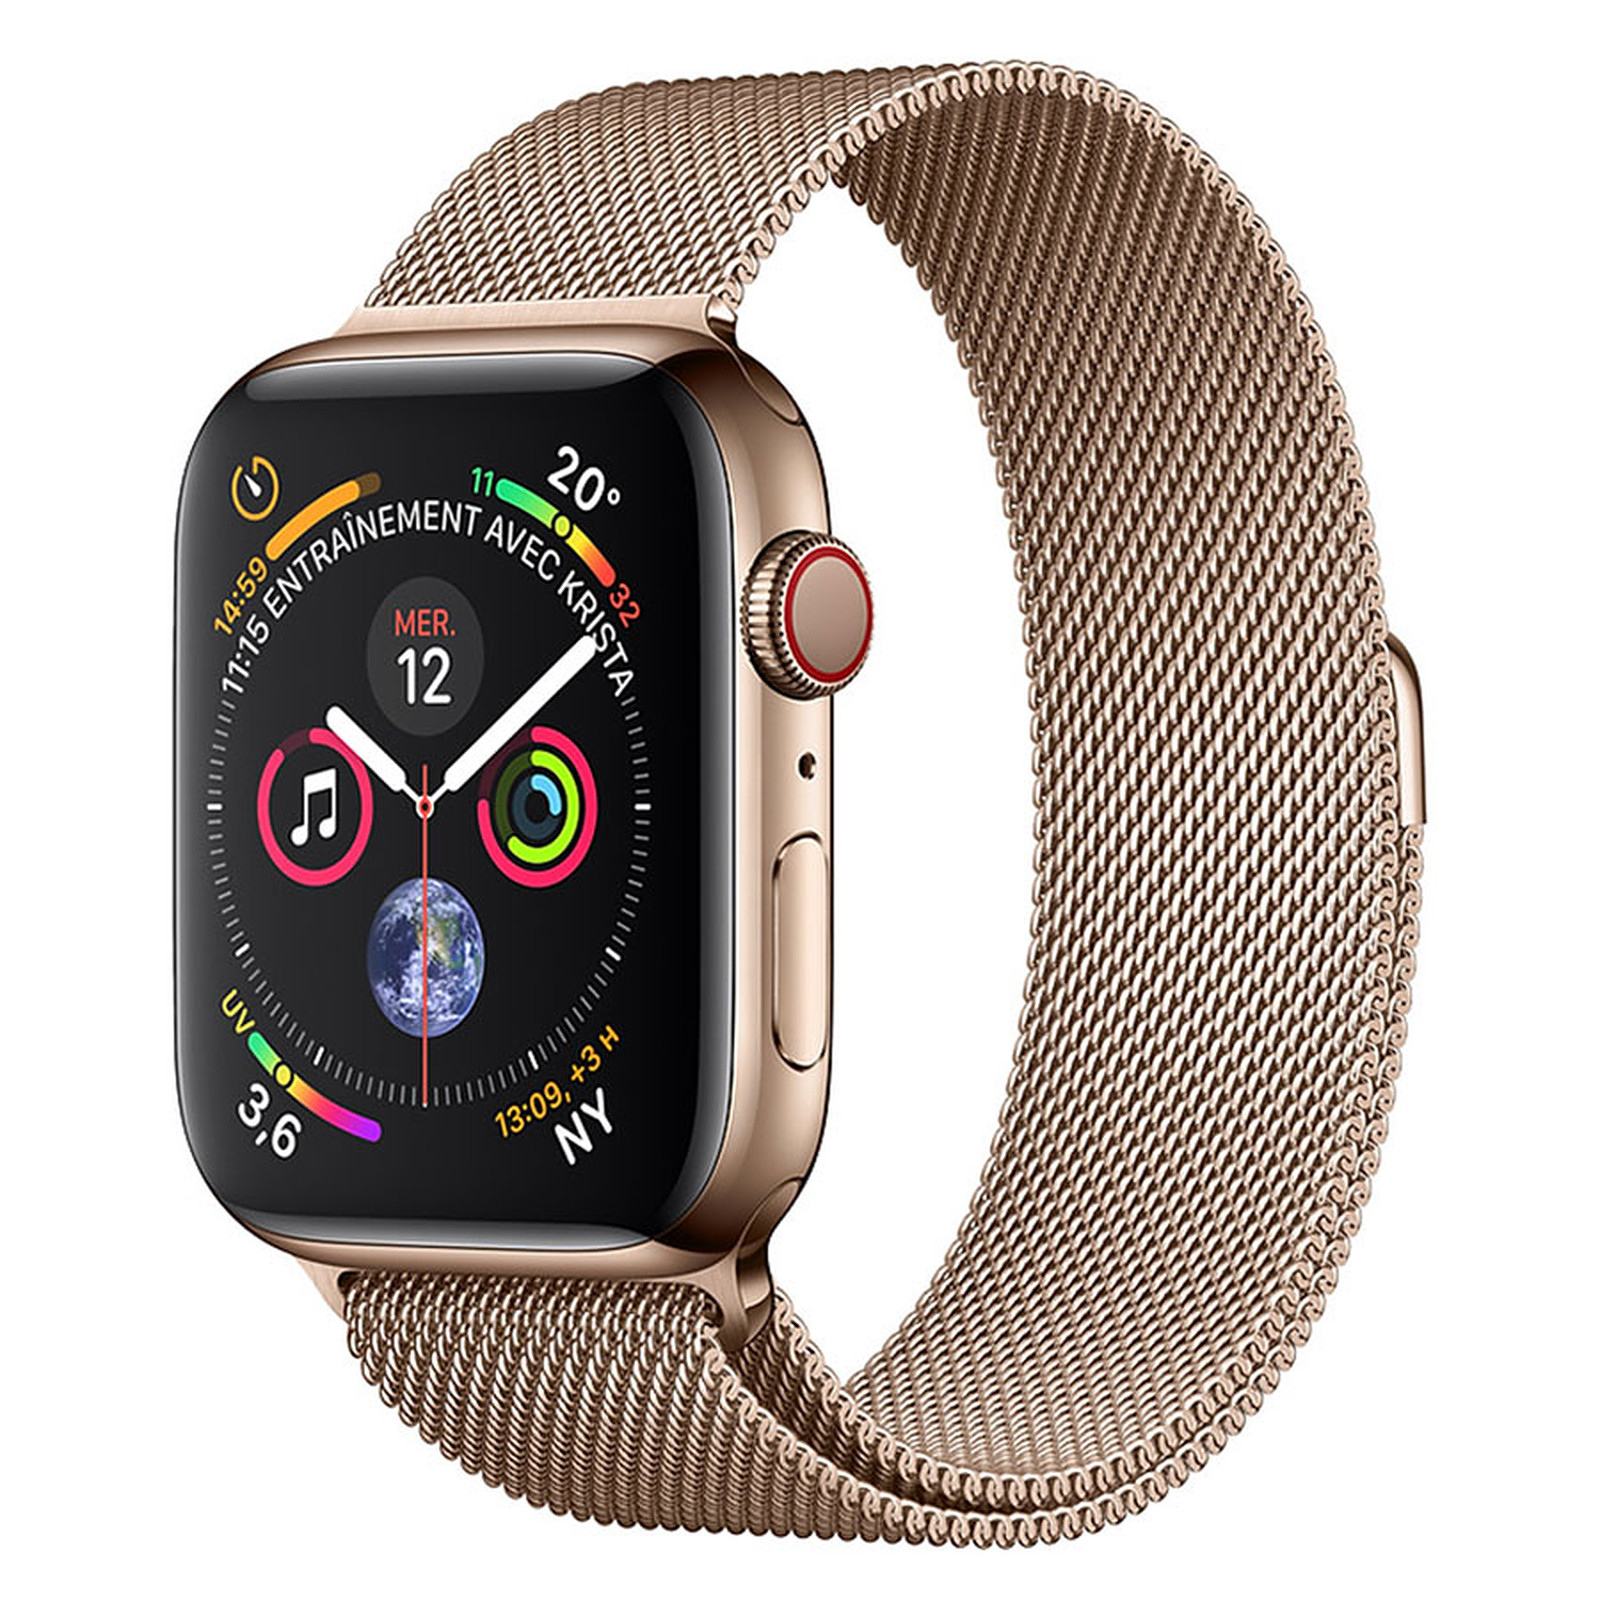 Apple Watch Series 4 GPS + Cellular Acier Or Milanais Or 44 mm